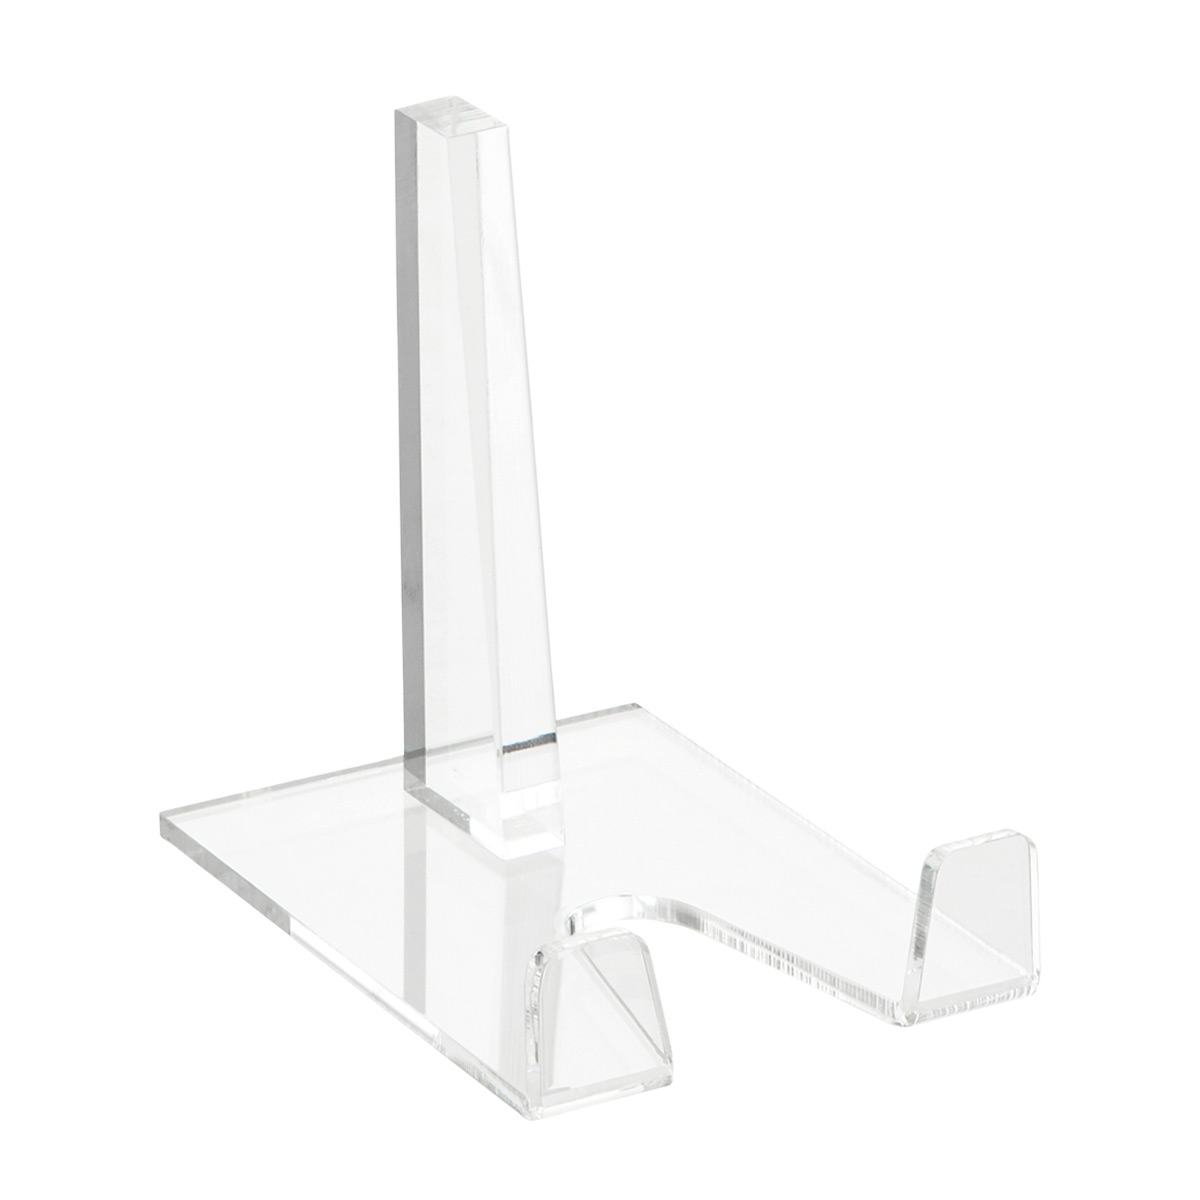 All fields are required!  sc 1 st  The Container Store & Deluxe Acrylic Plate Stands | The Container Store